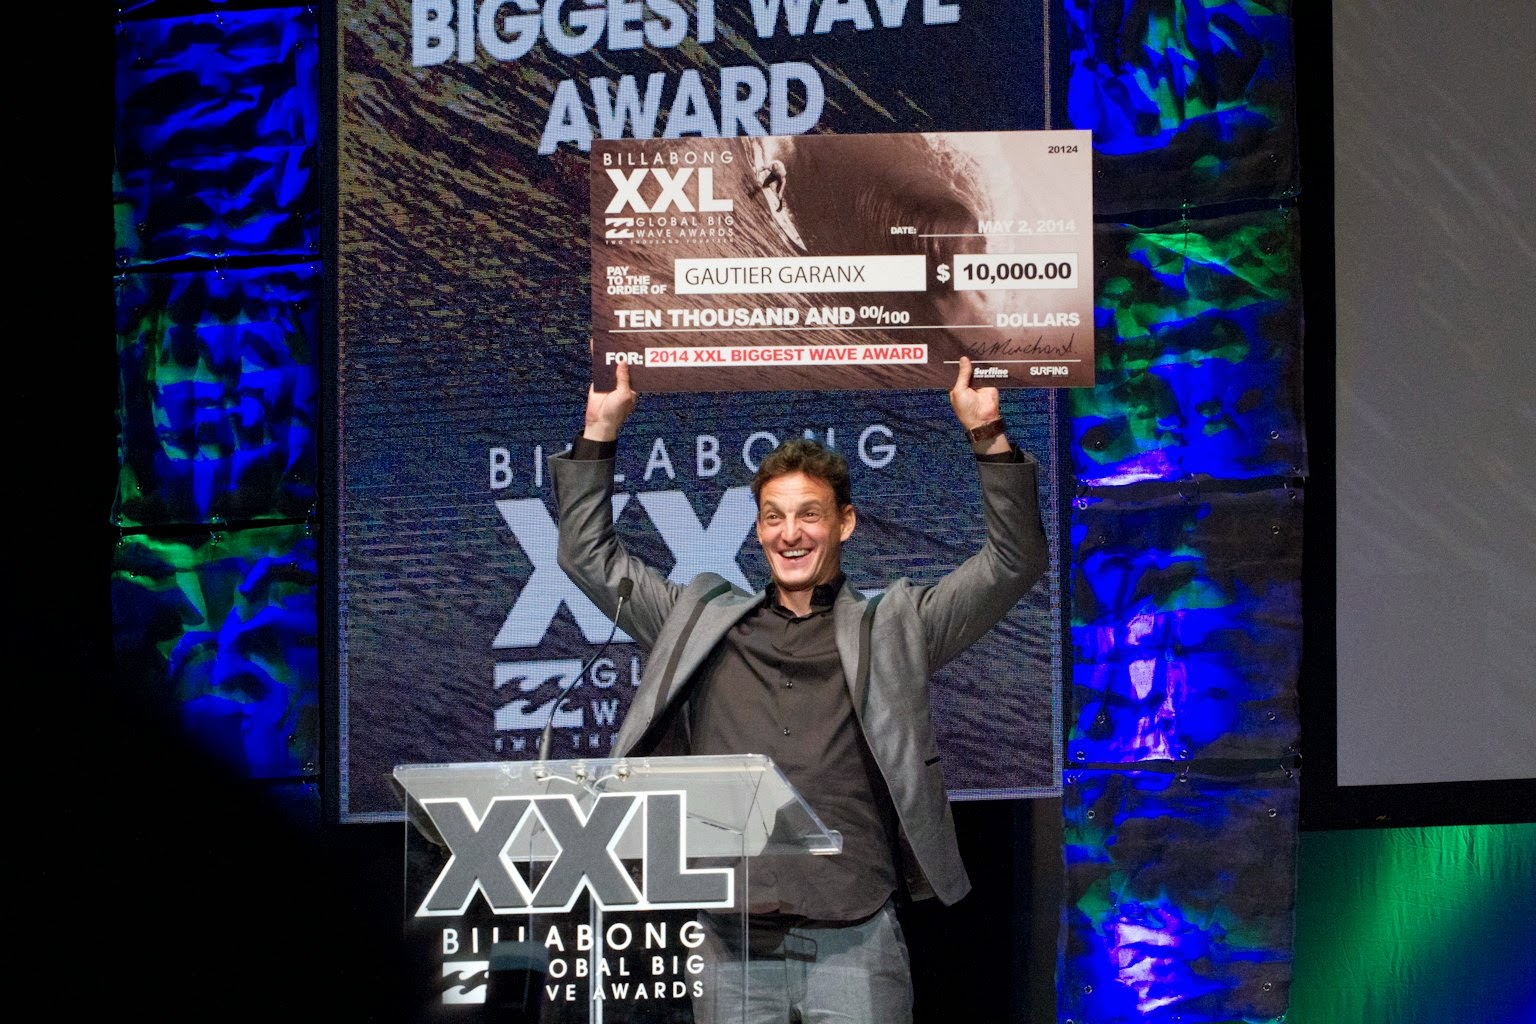 Gautier Garanx bigest wave award billabong xxl 2014